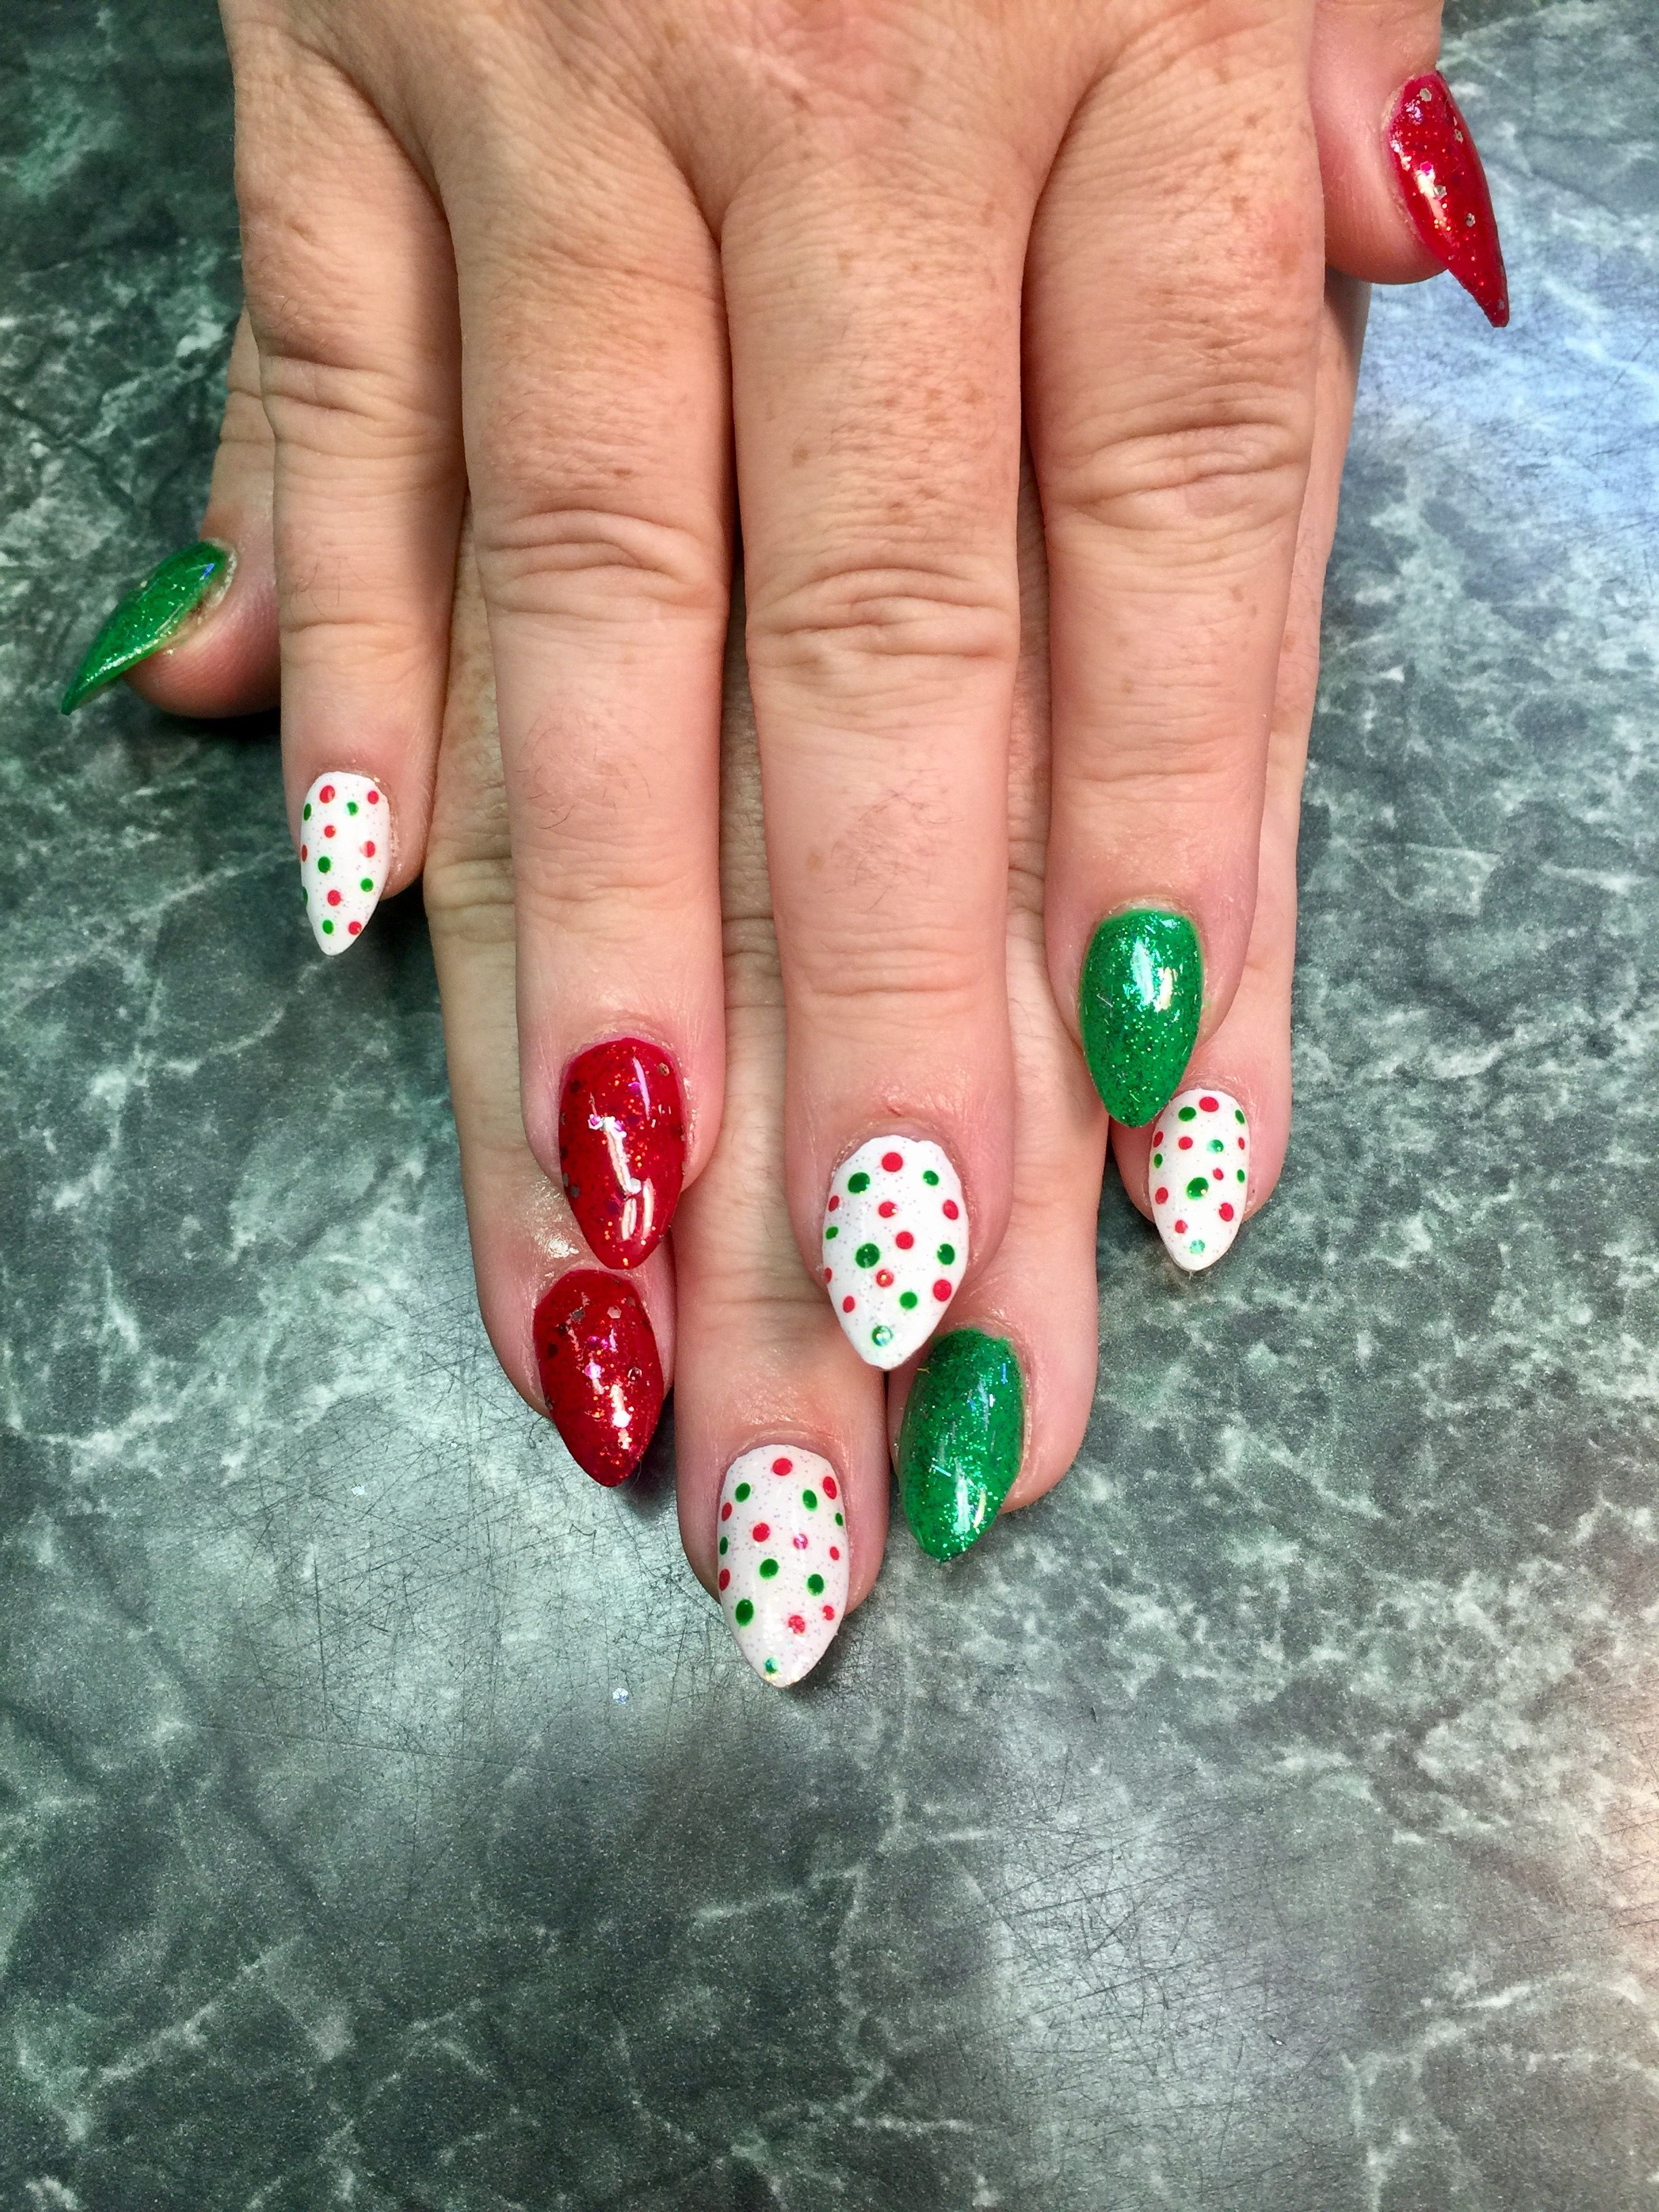 Red, green, white, and polka dot Christmas nails